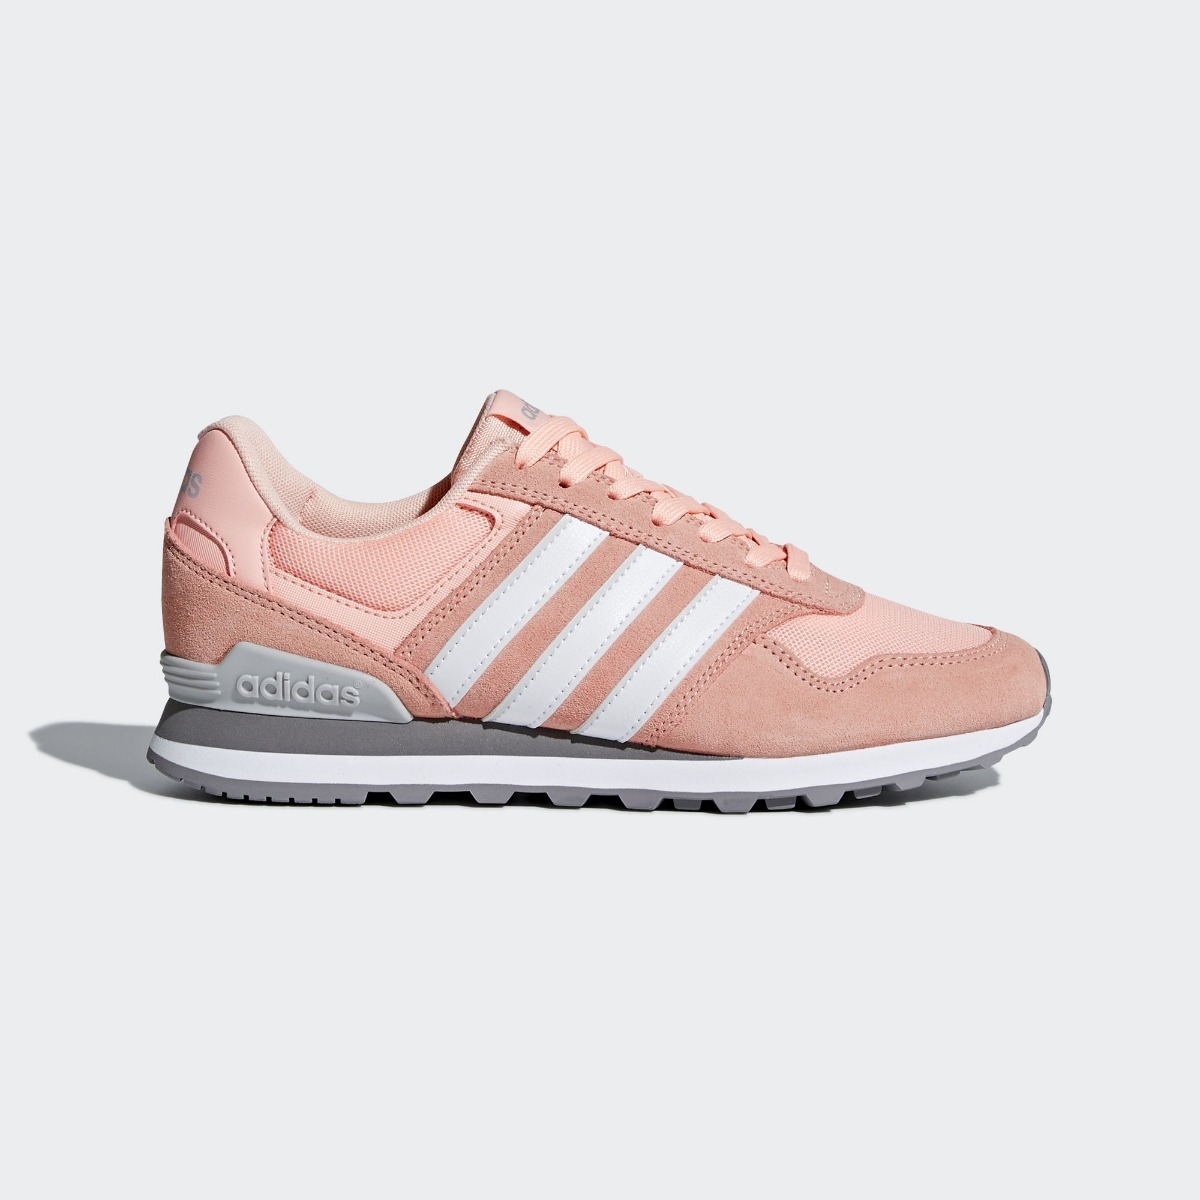 legal Acostumbrarse a terraza  zapatillas adidas mujer precios Cheaper Than Retail Price> Buy Clothing,  Accessories and lifestyle products for women & men -